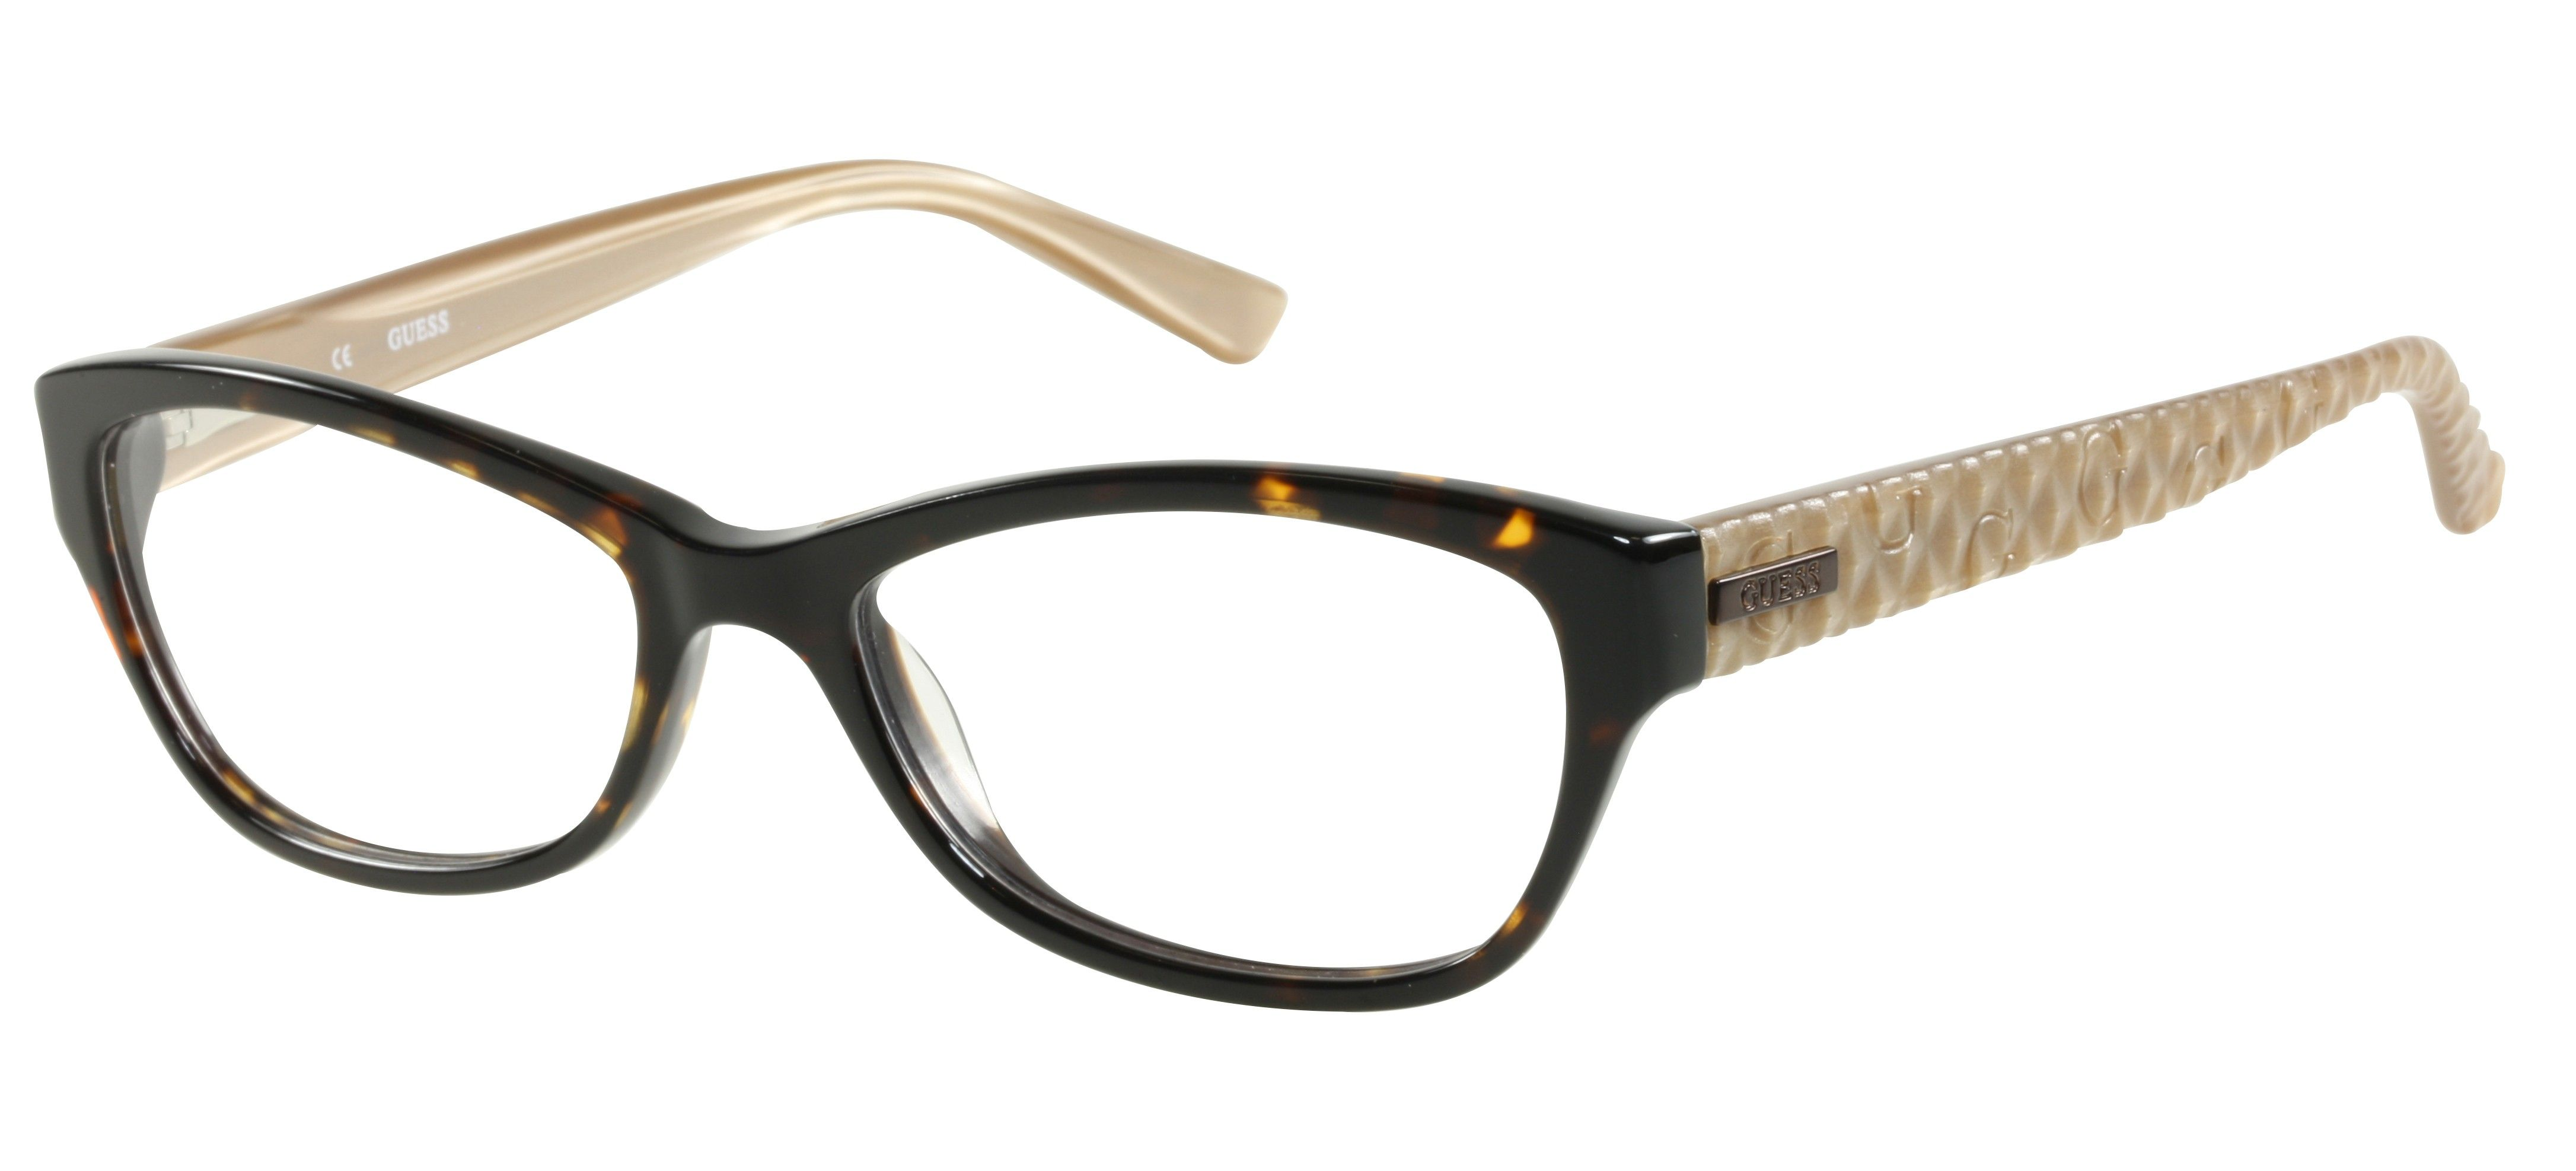 Brown & beige GUESS Frames for her   GUESS Brille   Abele-Optik ...